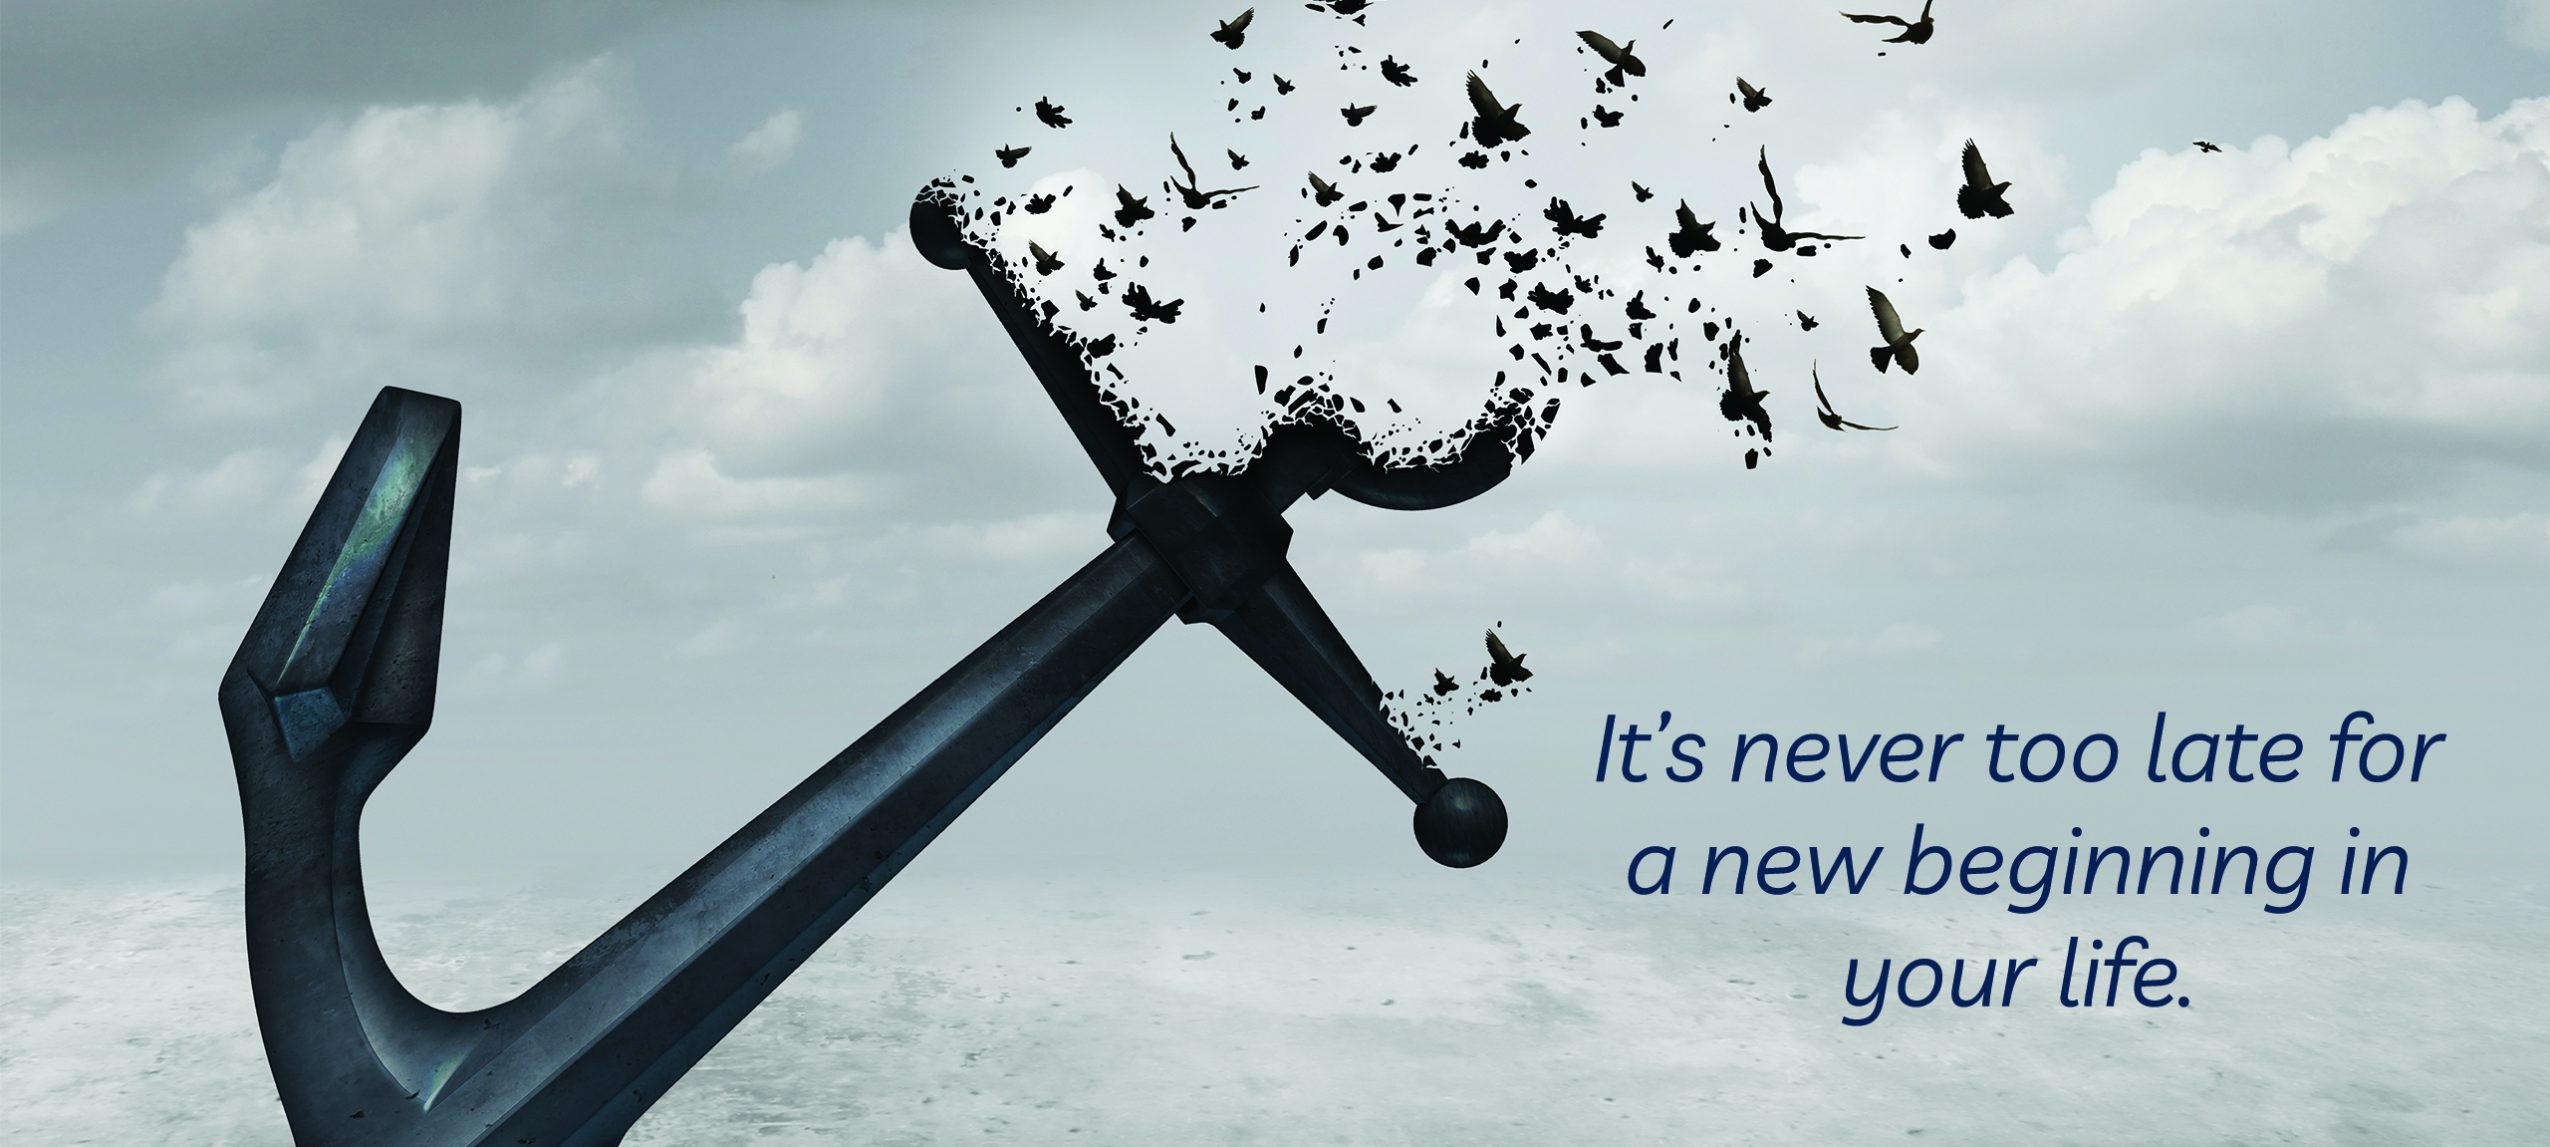 Are you ever too old to start something new? Anchor and birds